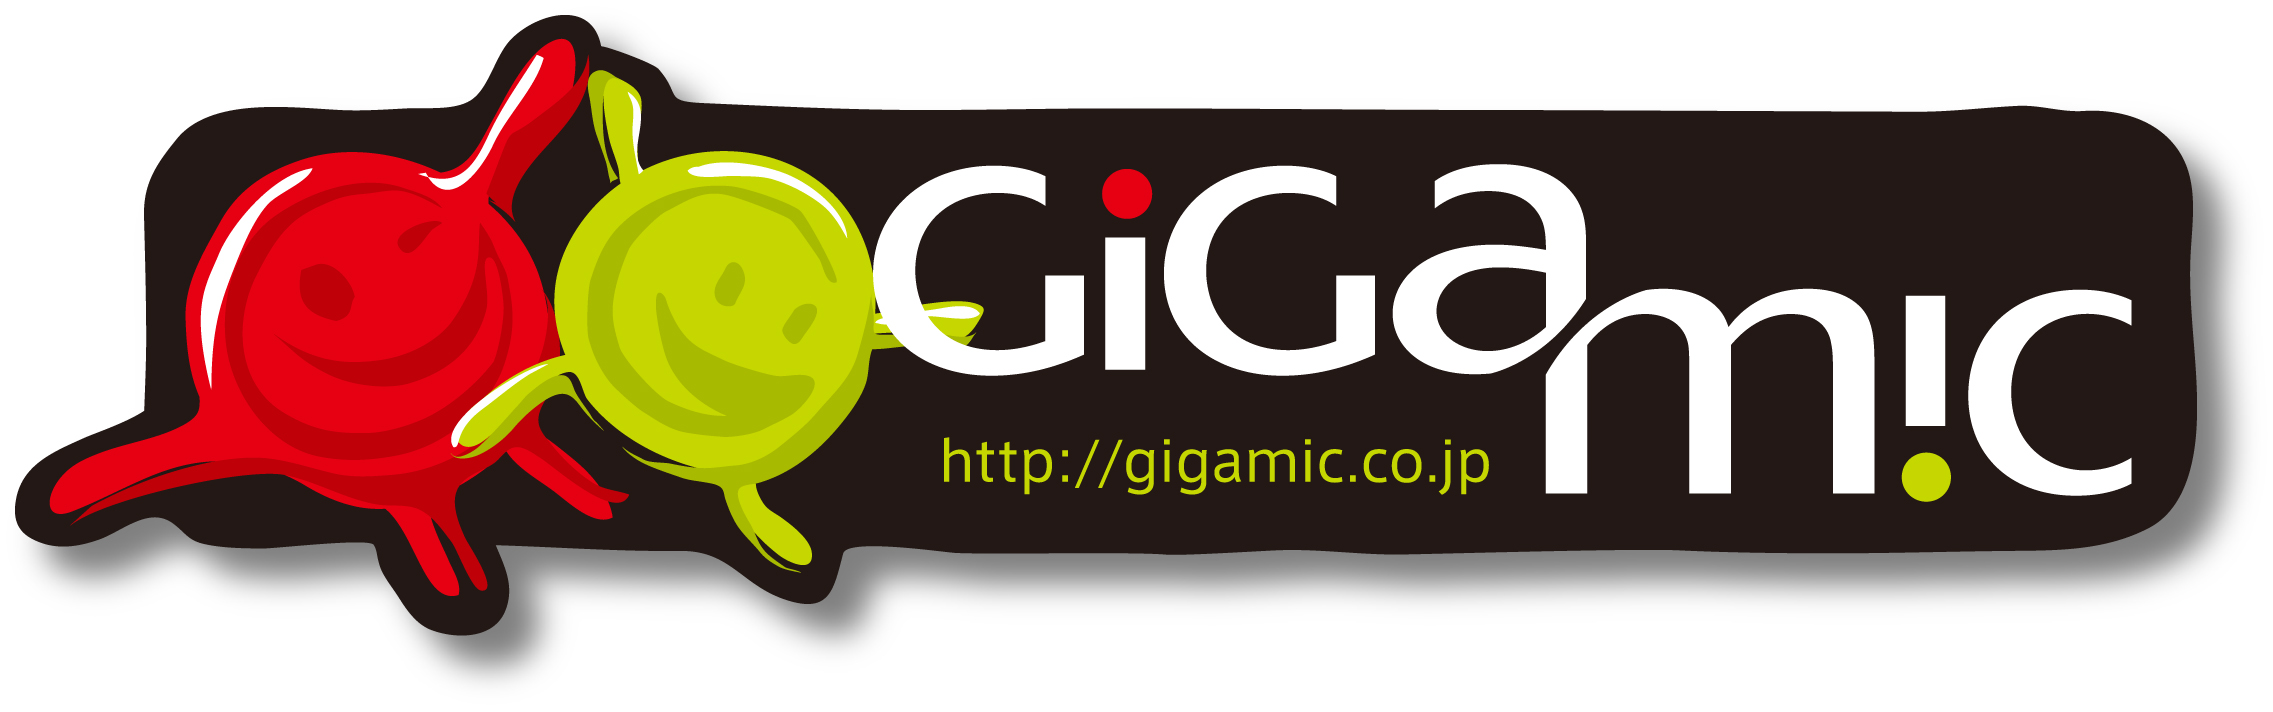 Gigamic ロゴ